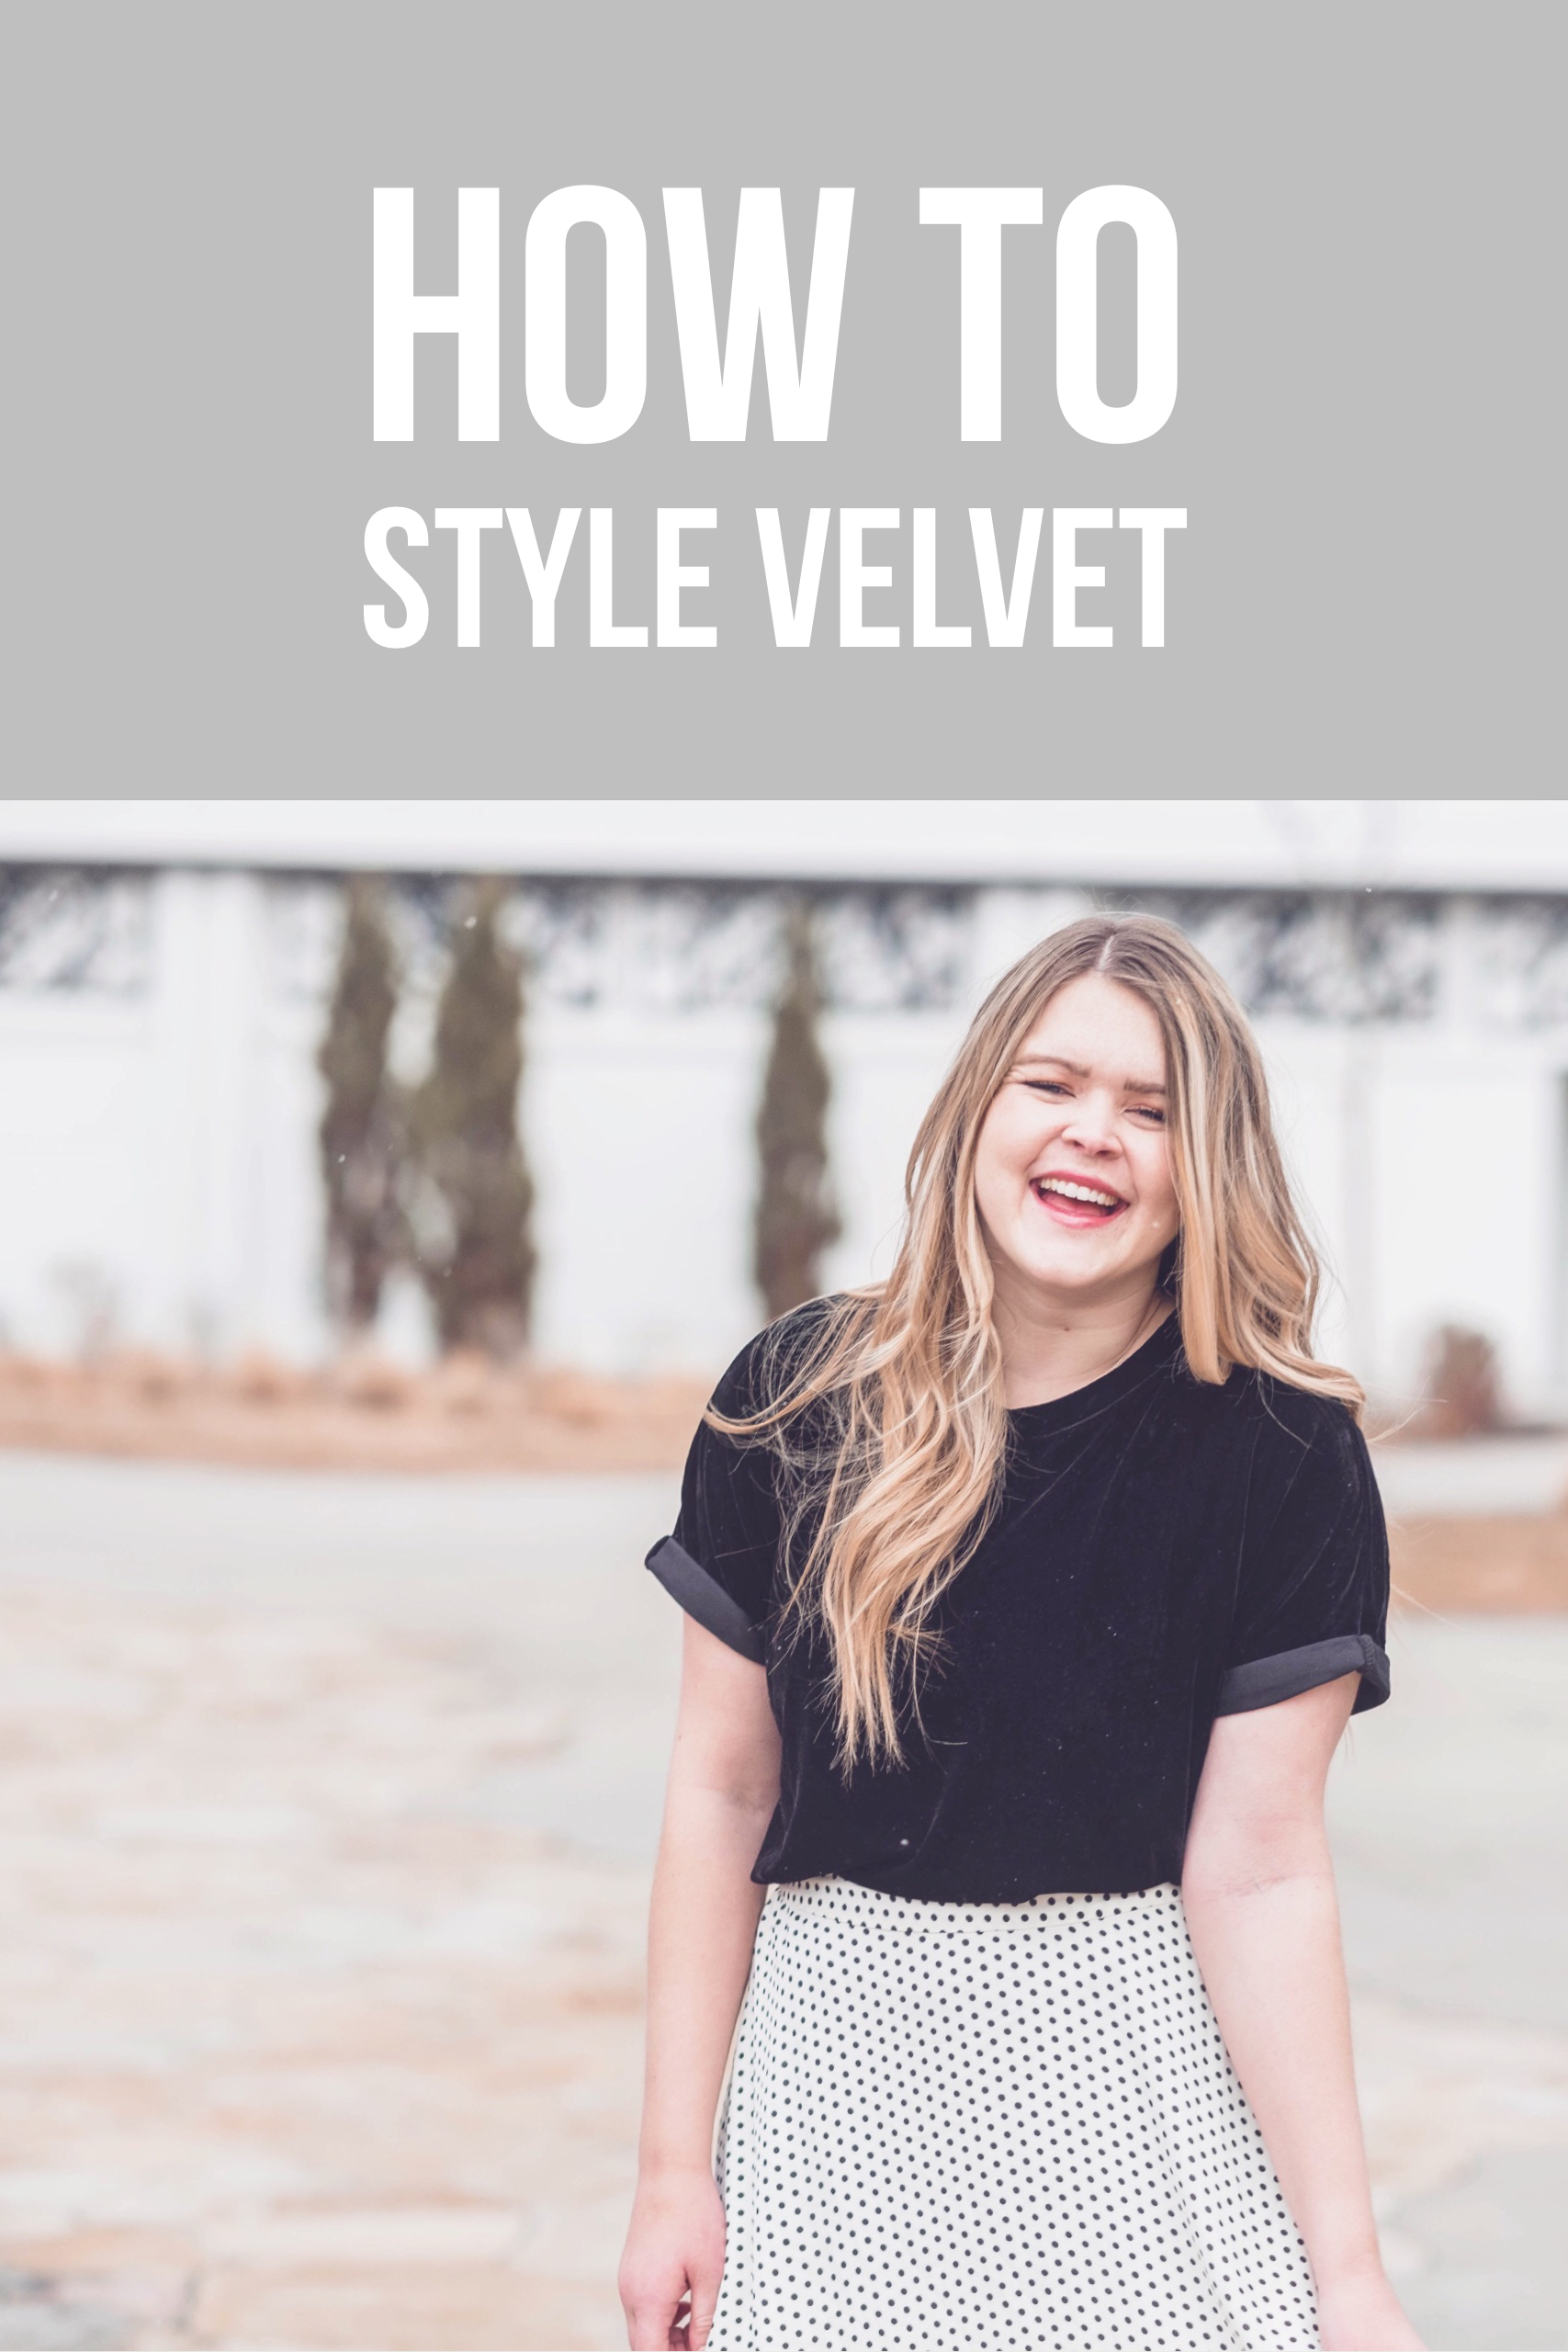 Velvet is one of my favorite fashion trends. This top is so soft and versatile. I didn't think I would fall in love with a velvet shirt but I totally have.